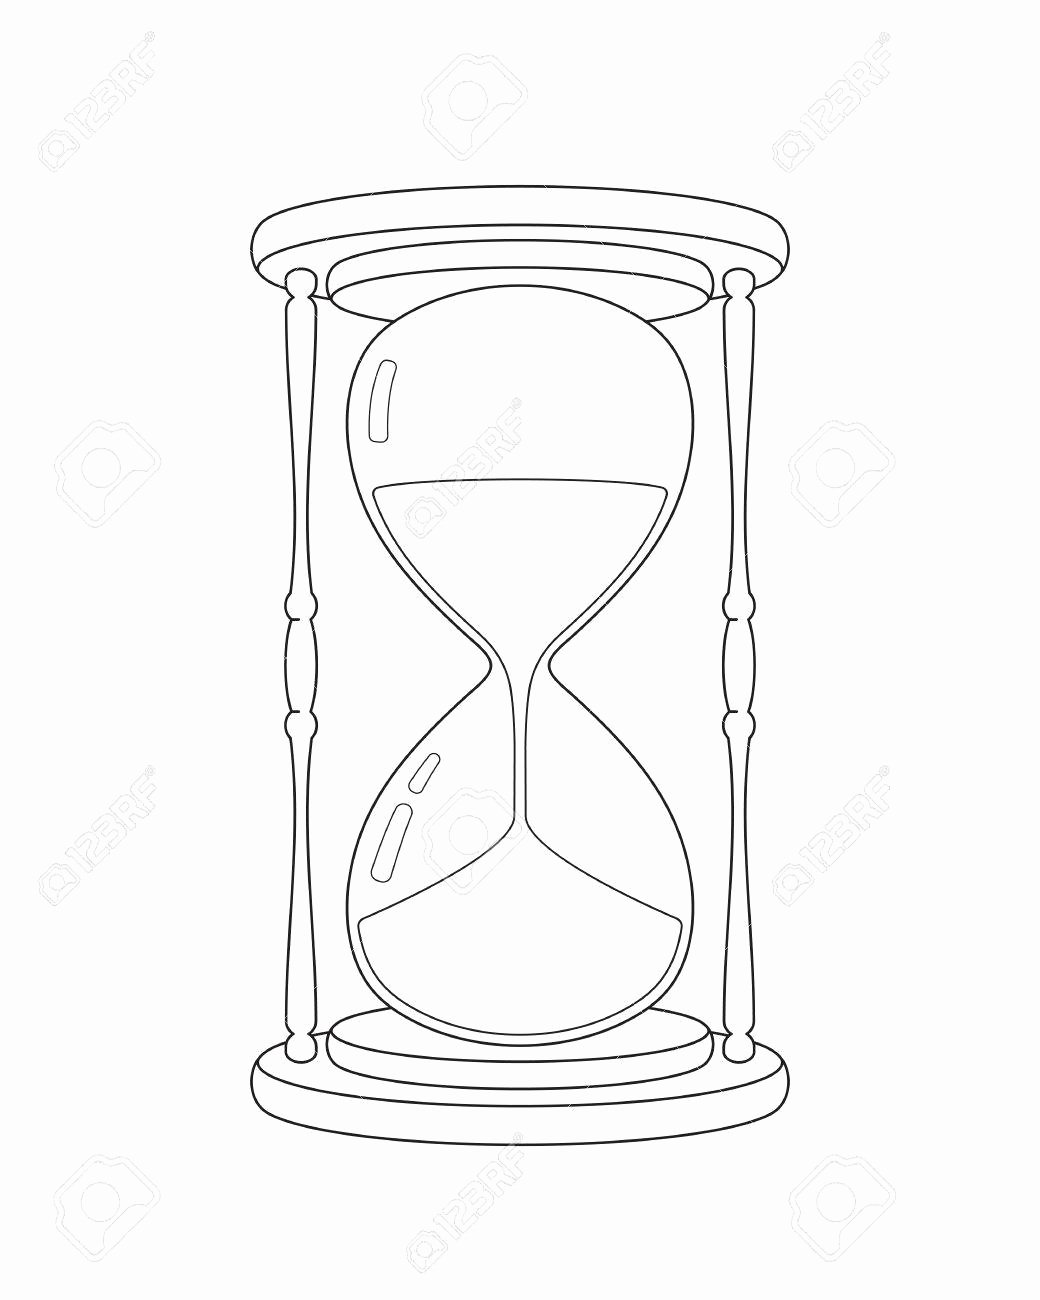 Phantom Stock Agreement Template Lovely Hourglass Drawing at Getdrawings